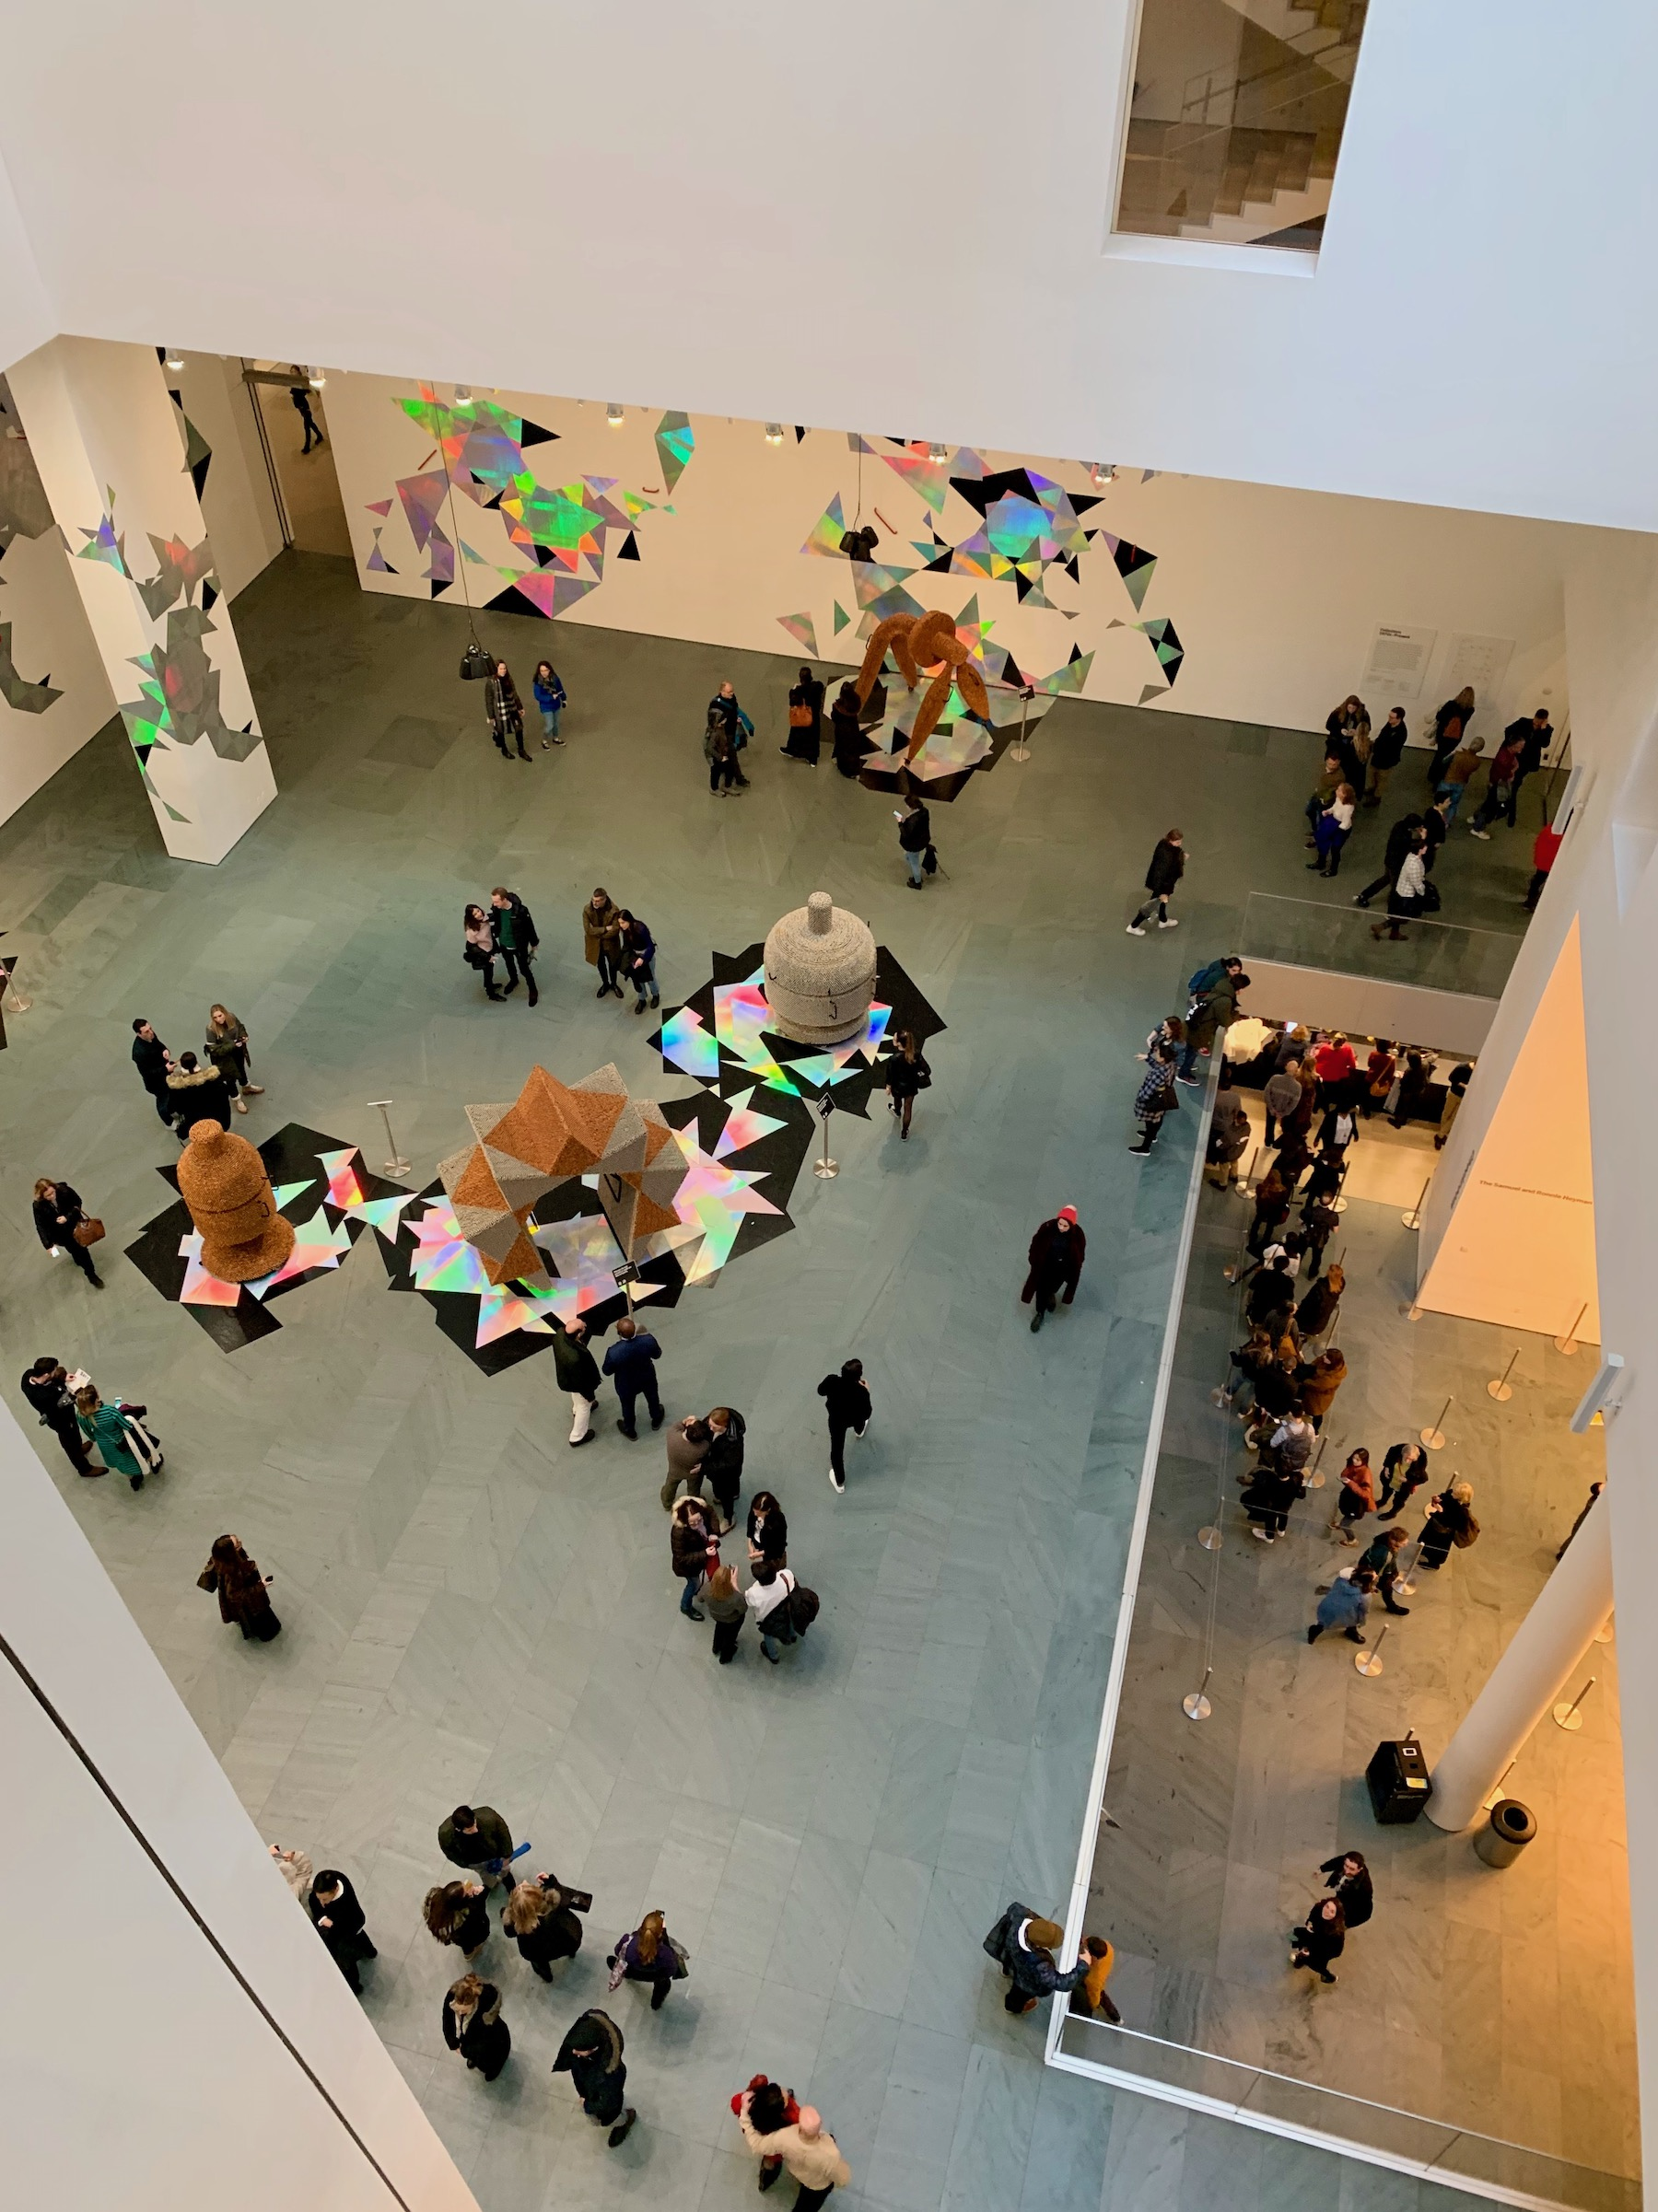 People milling around the lobby at MoMa. The weekender.